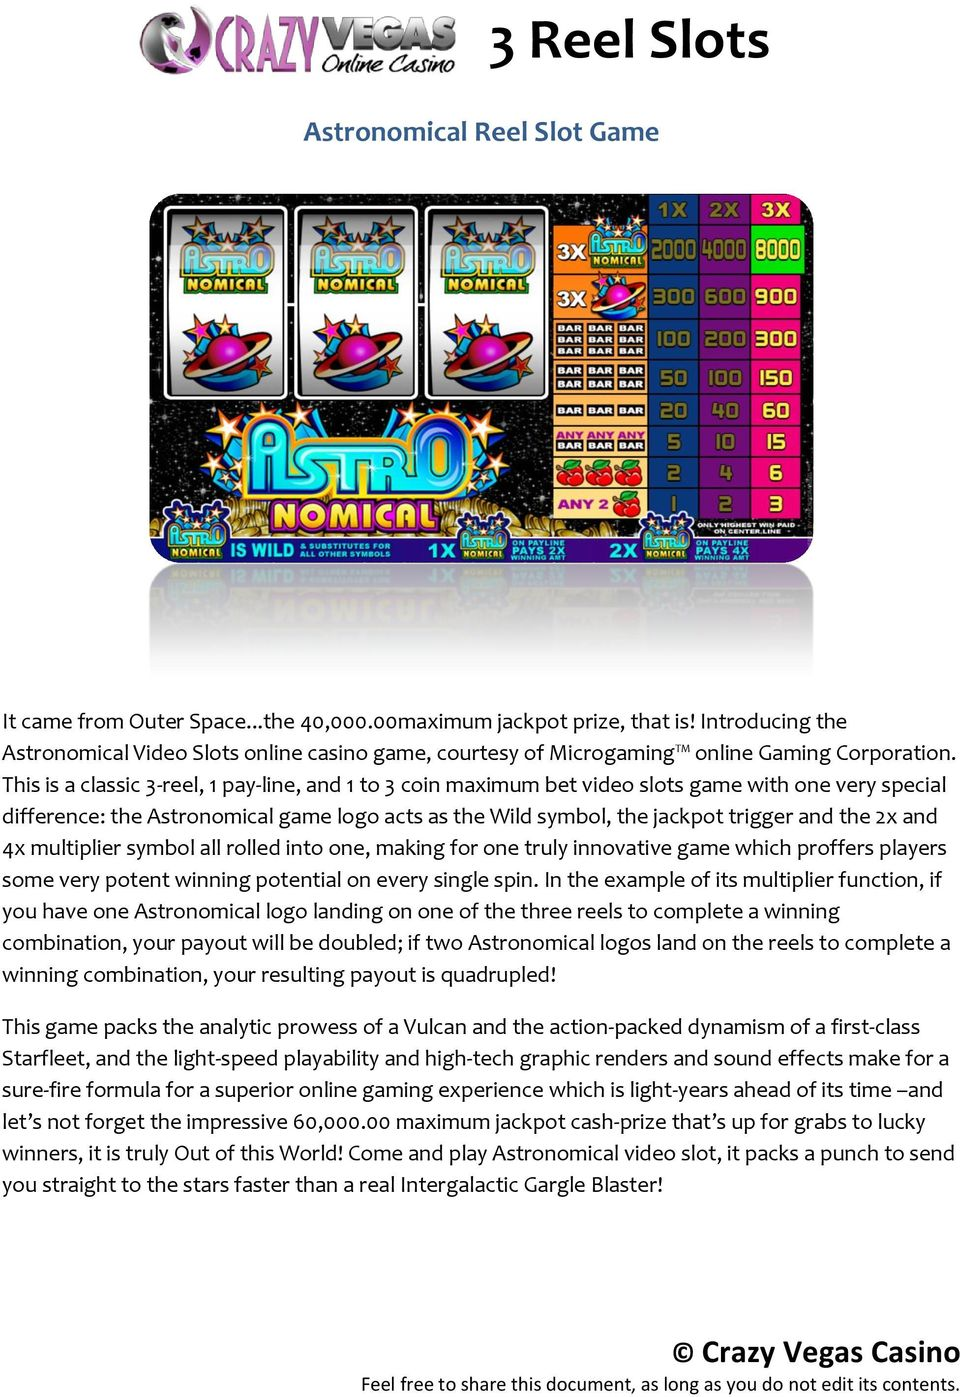 This is a classic 3-reel, 1 pay-line, and 1 to 3 coin maximum bet video slots game with one very special difference: the Astronomical game logo acts as the Wild symbol, the jackpot trigger and the 2x